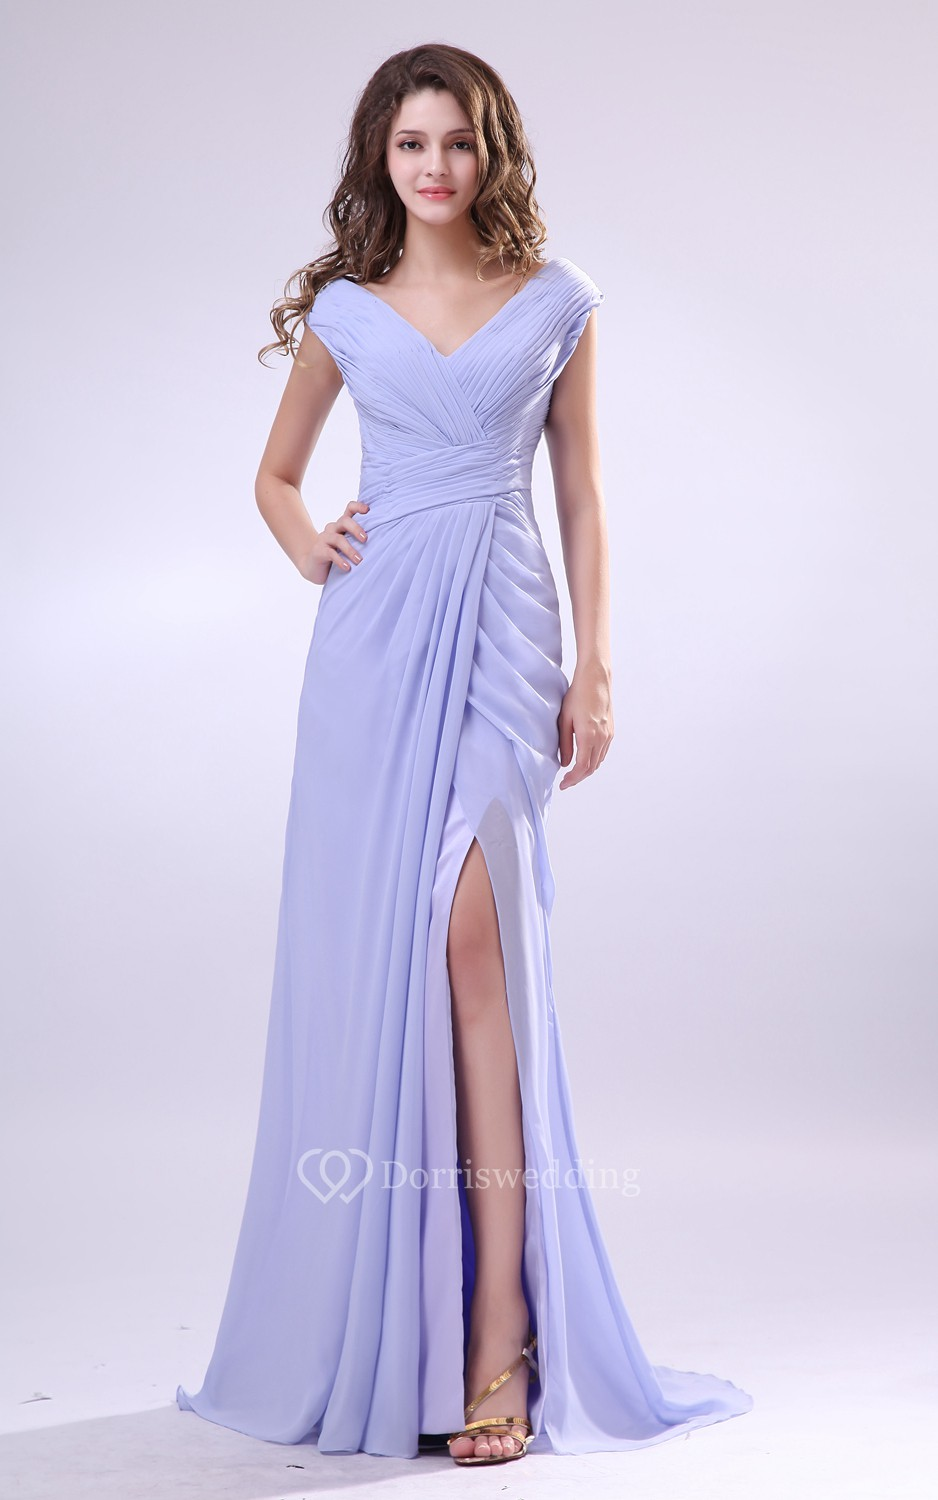 V neck chiffon pleated dress with criss cross ruching and for Mother of the bride dresses for casual summer wedding